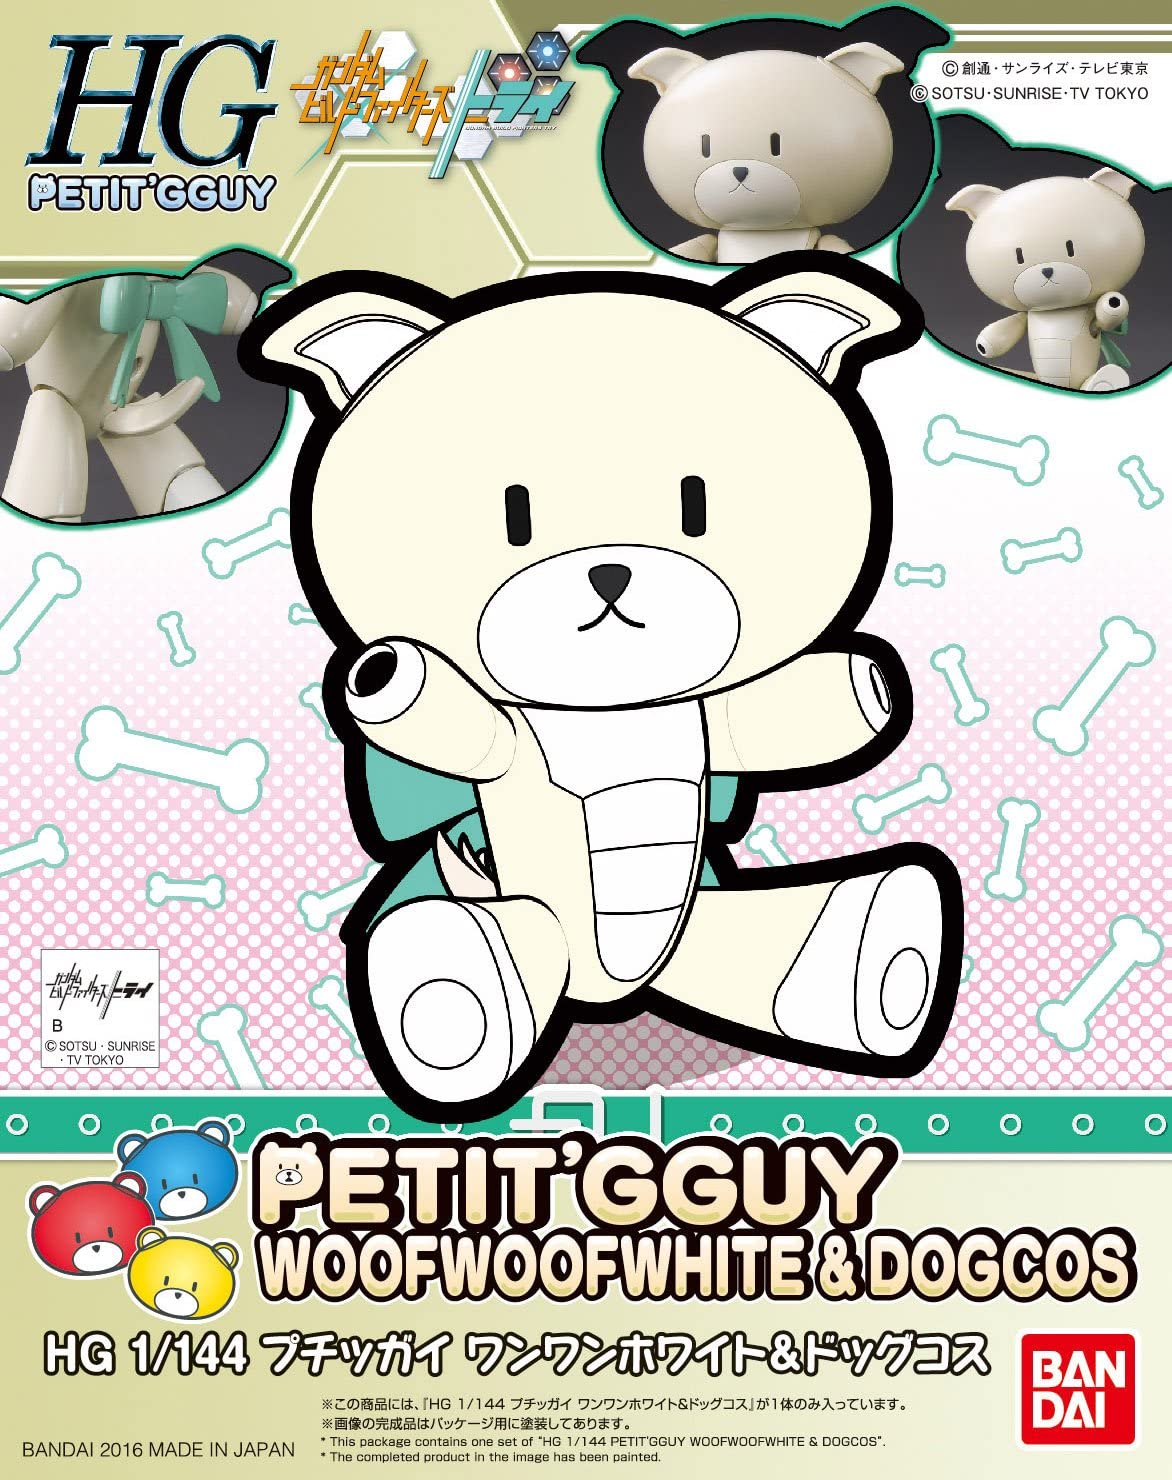 HGPG 1/144 プチッガイ ワンワンホワイト&ドッグコス [Petit'gguy WoofWoof White & Dog Cos] 5059152 0212189